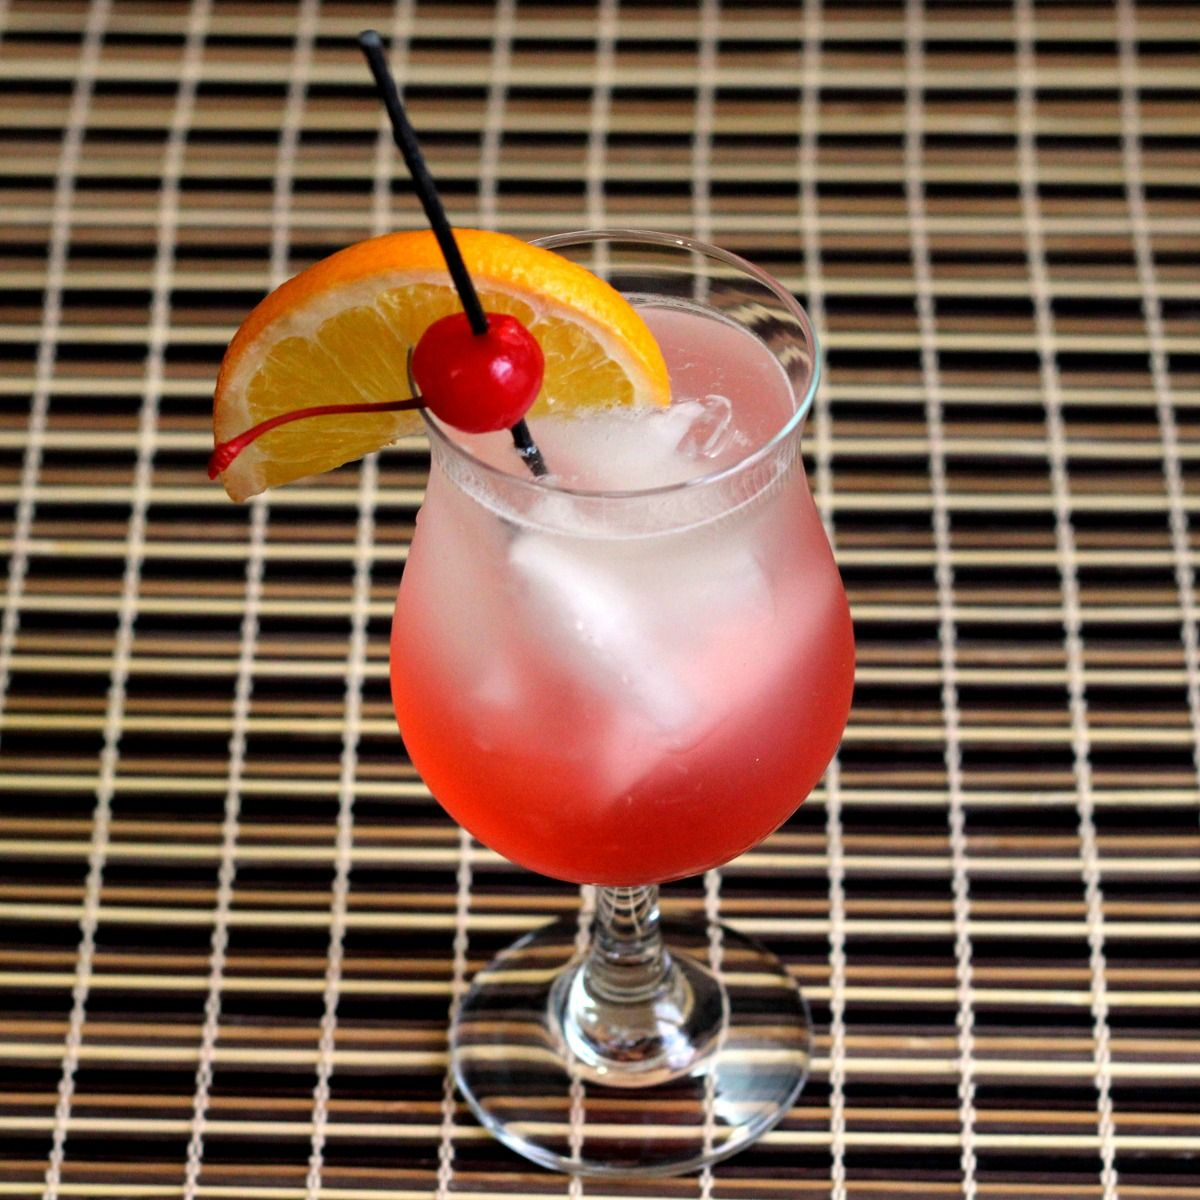 Cherry Vodka Sour Drink Recipe: Vodka, Grenadine, Sour Mix